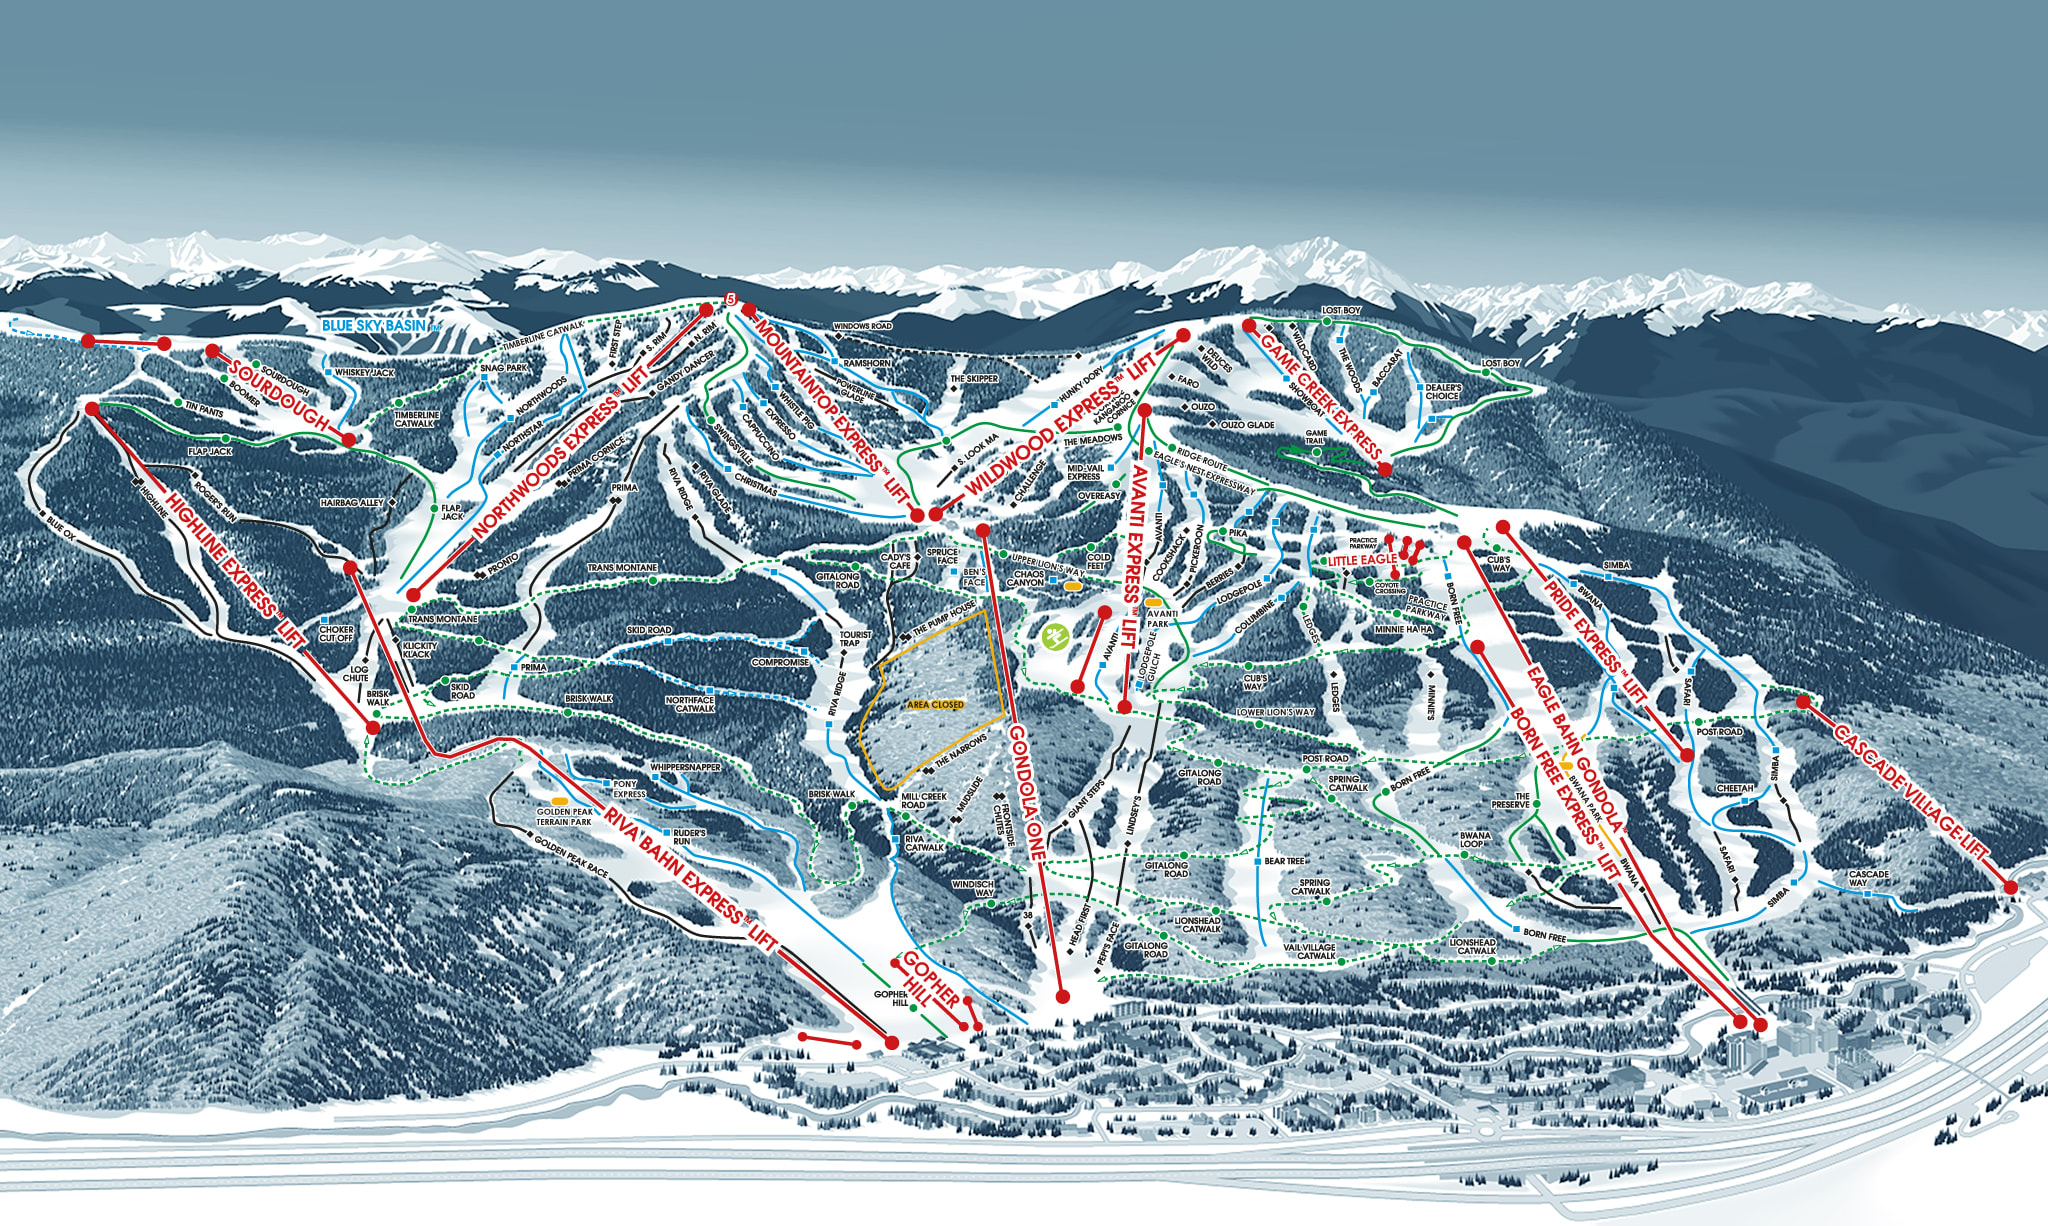 Map Of Vail Vail Trail Map | Vail Ski Resort Map Of Vail